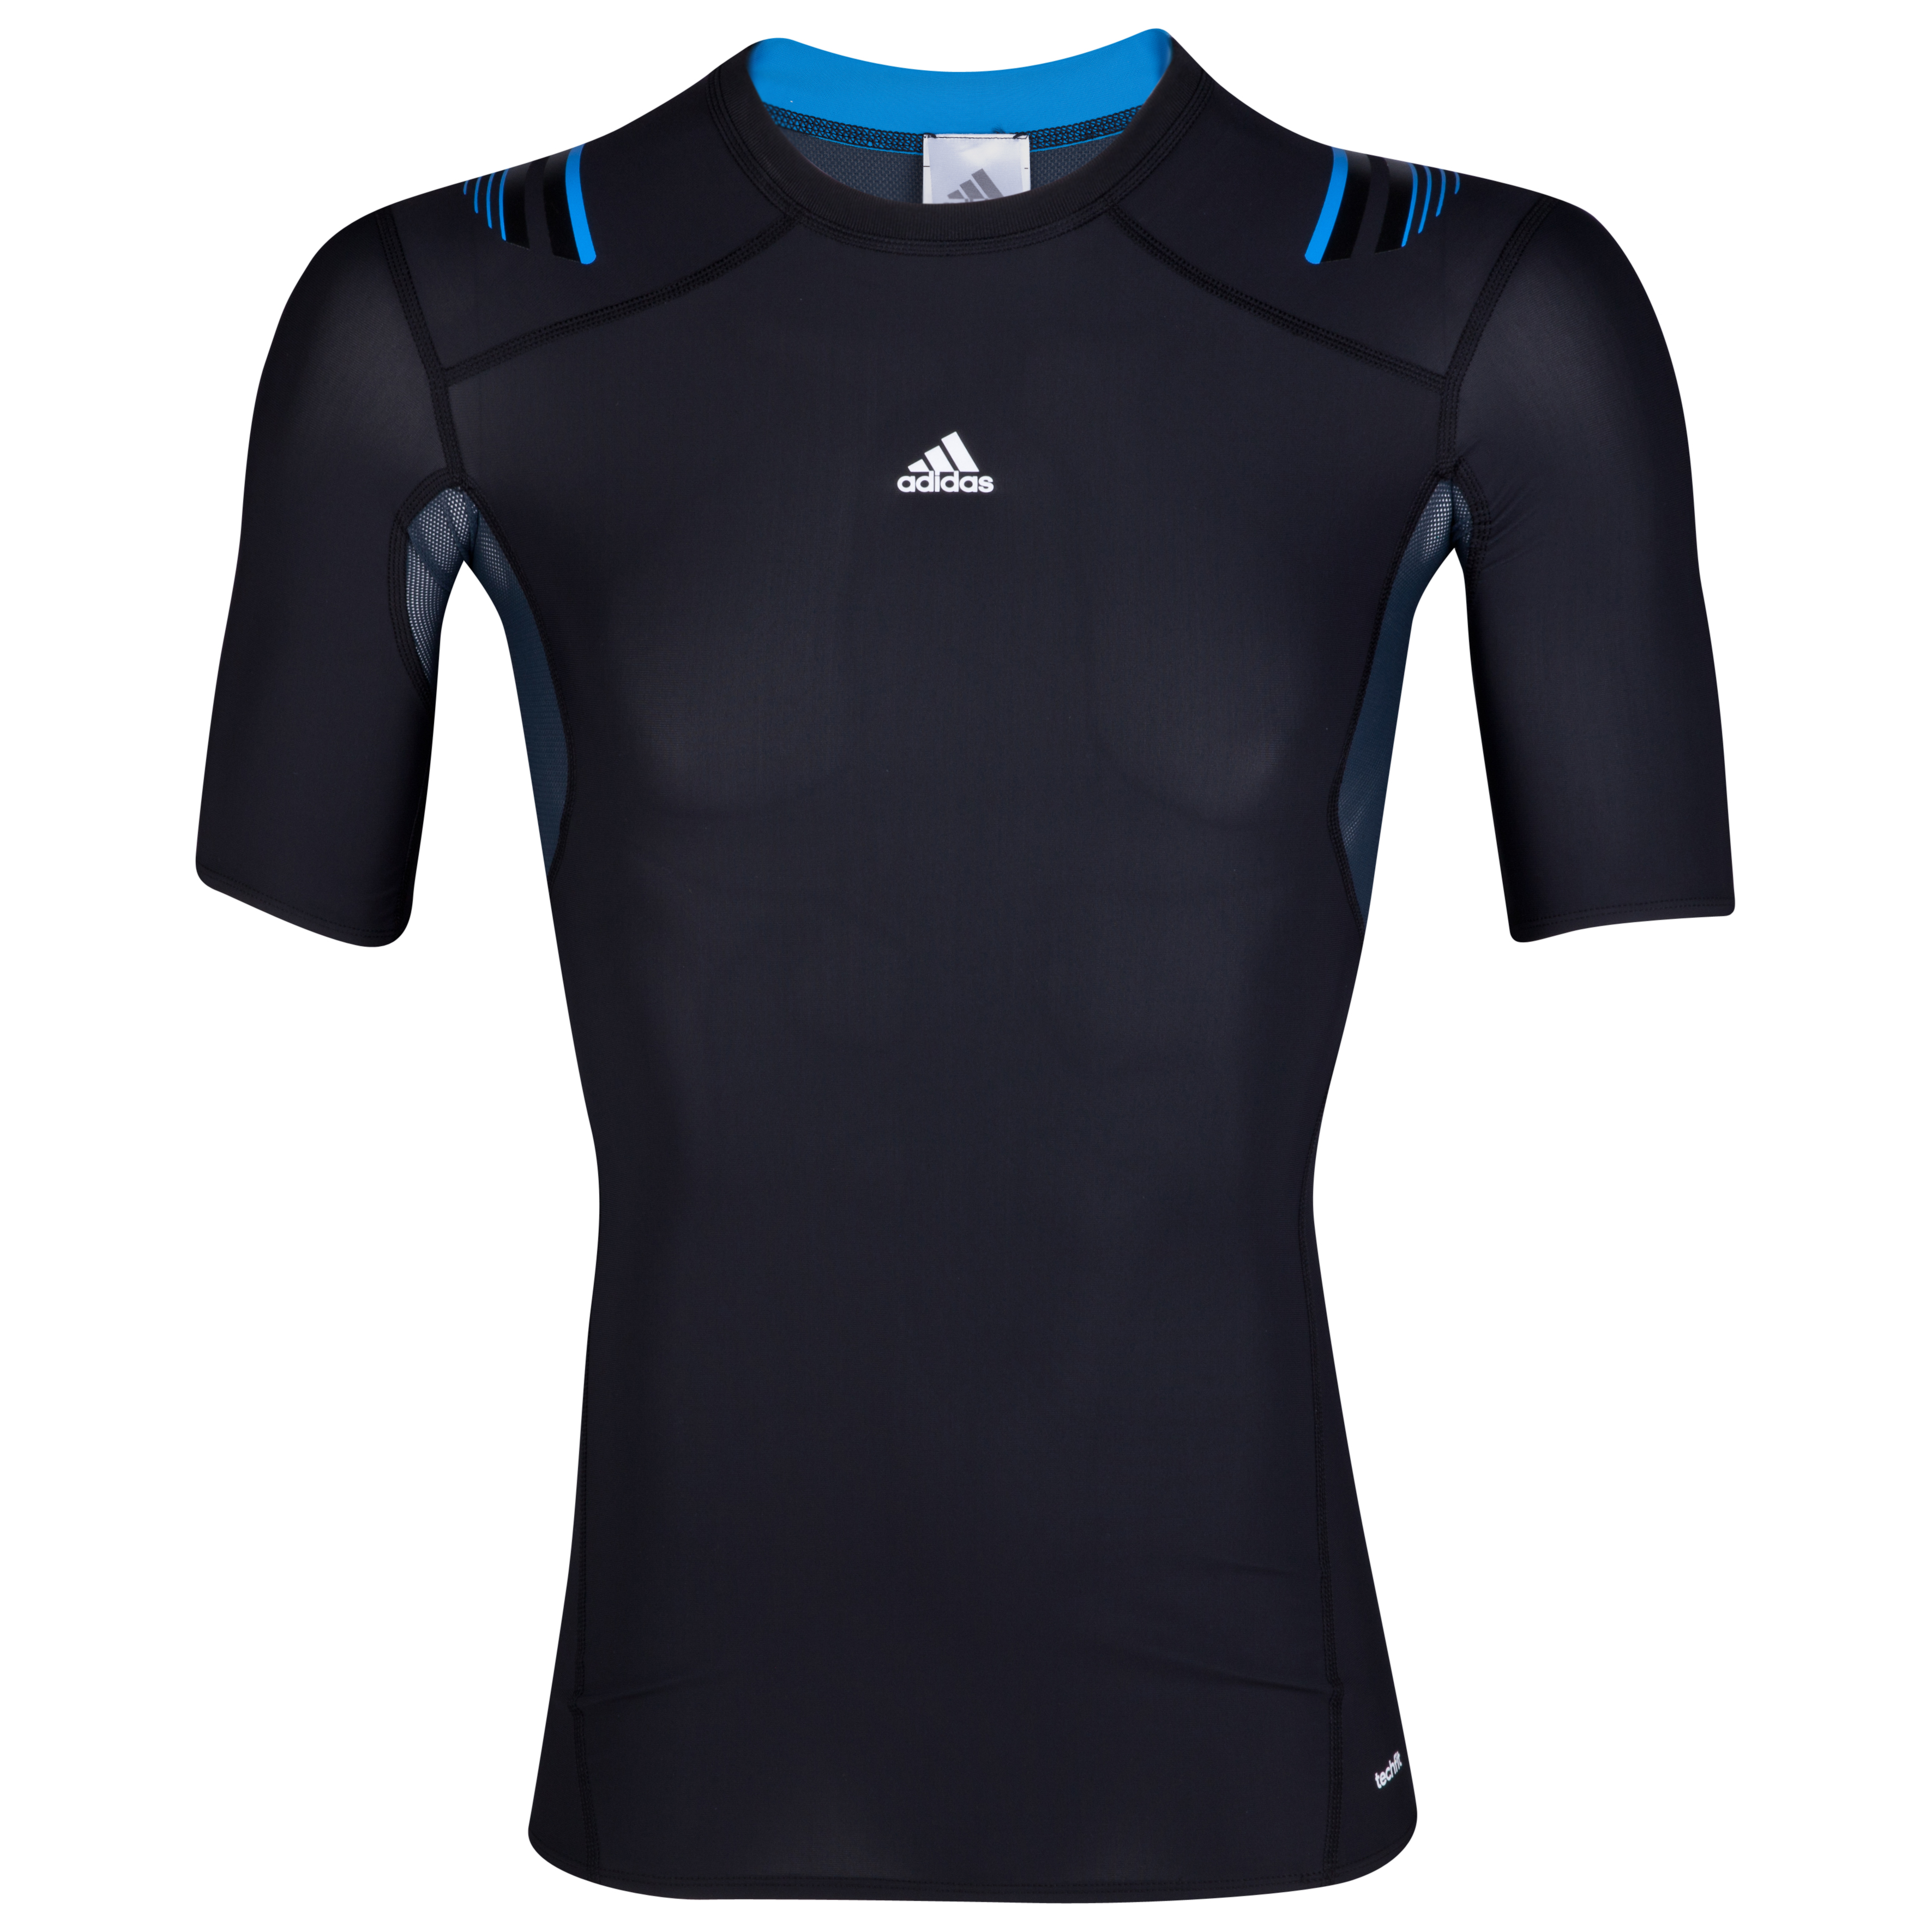 adidas TechFit PowerWeb Baselayer Top - Short Sleeve - Black